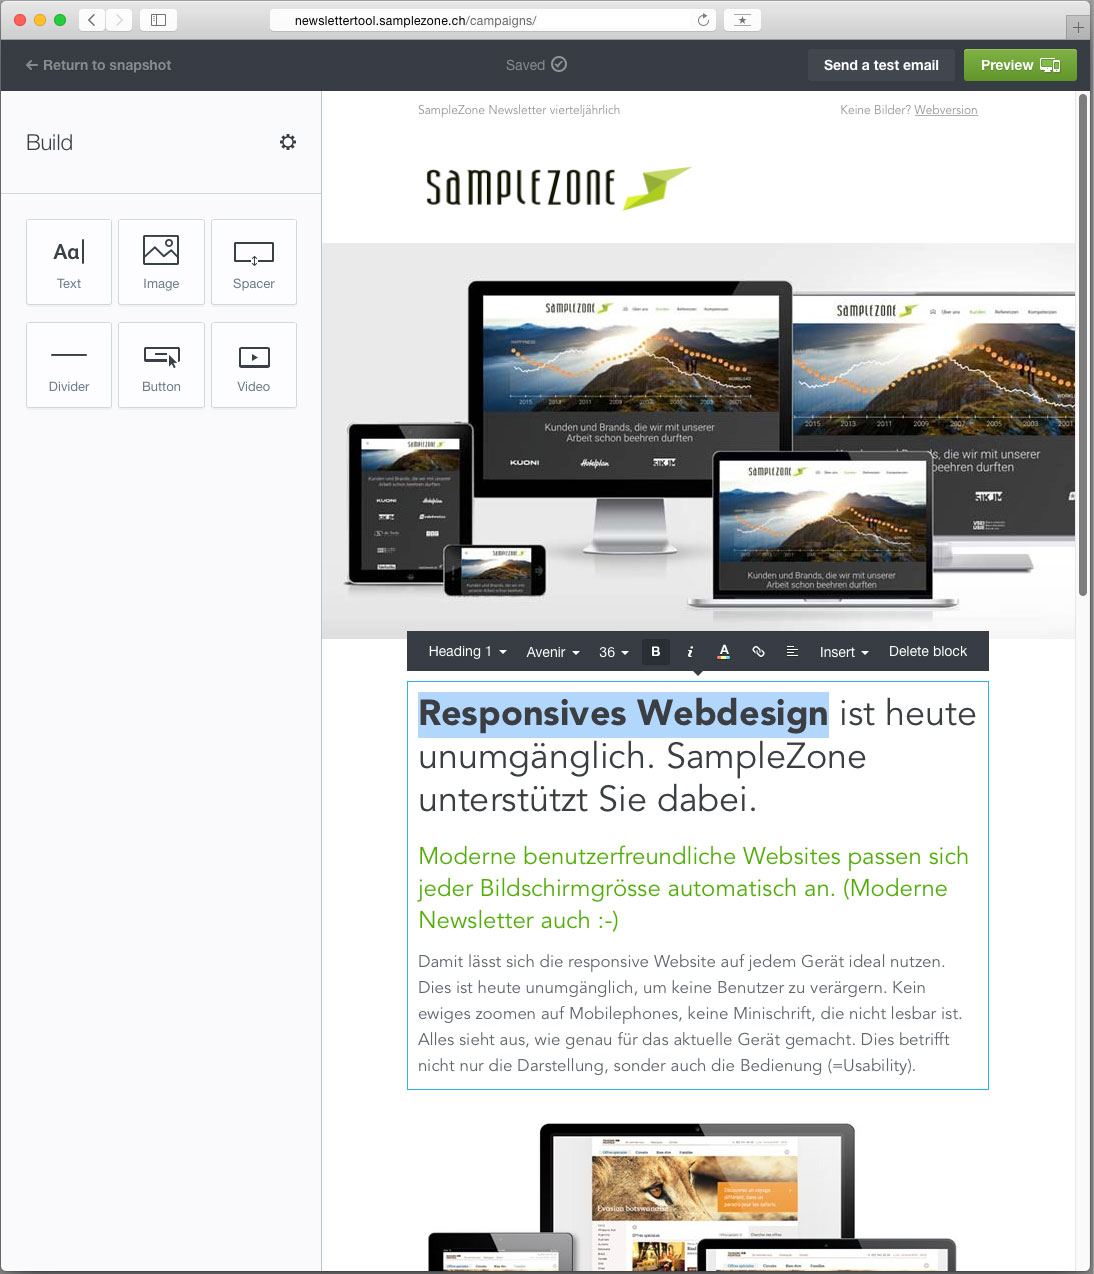 SampleZone Newslettertool Editor